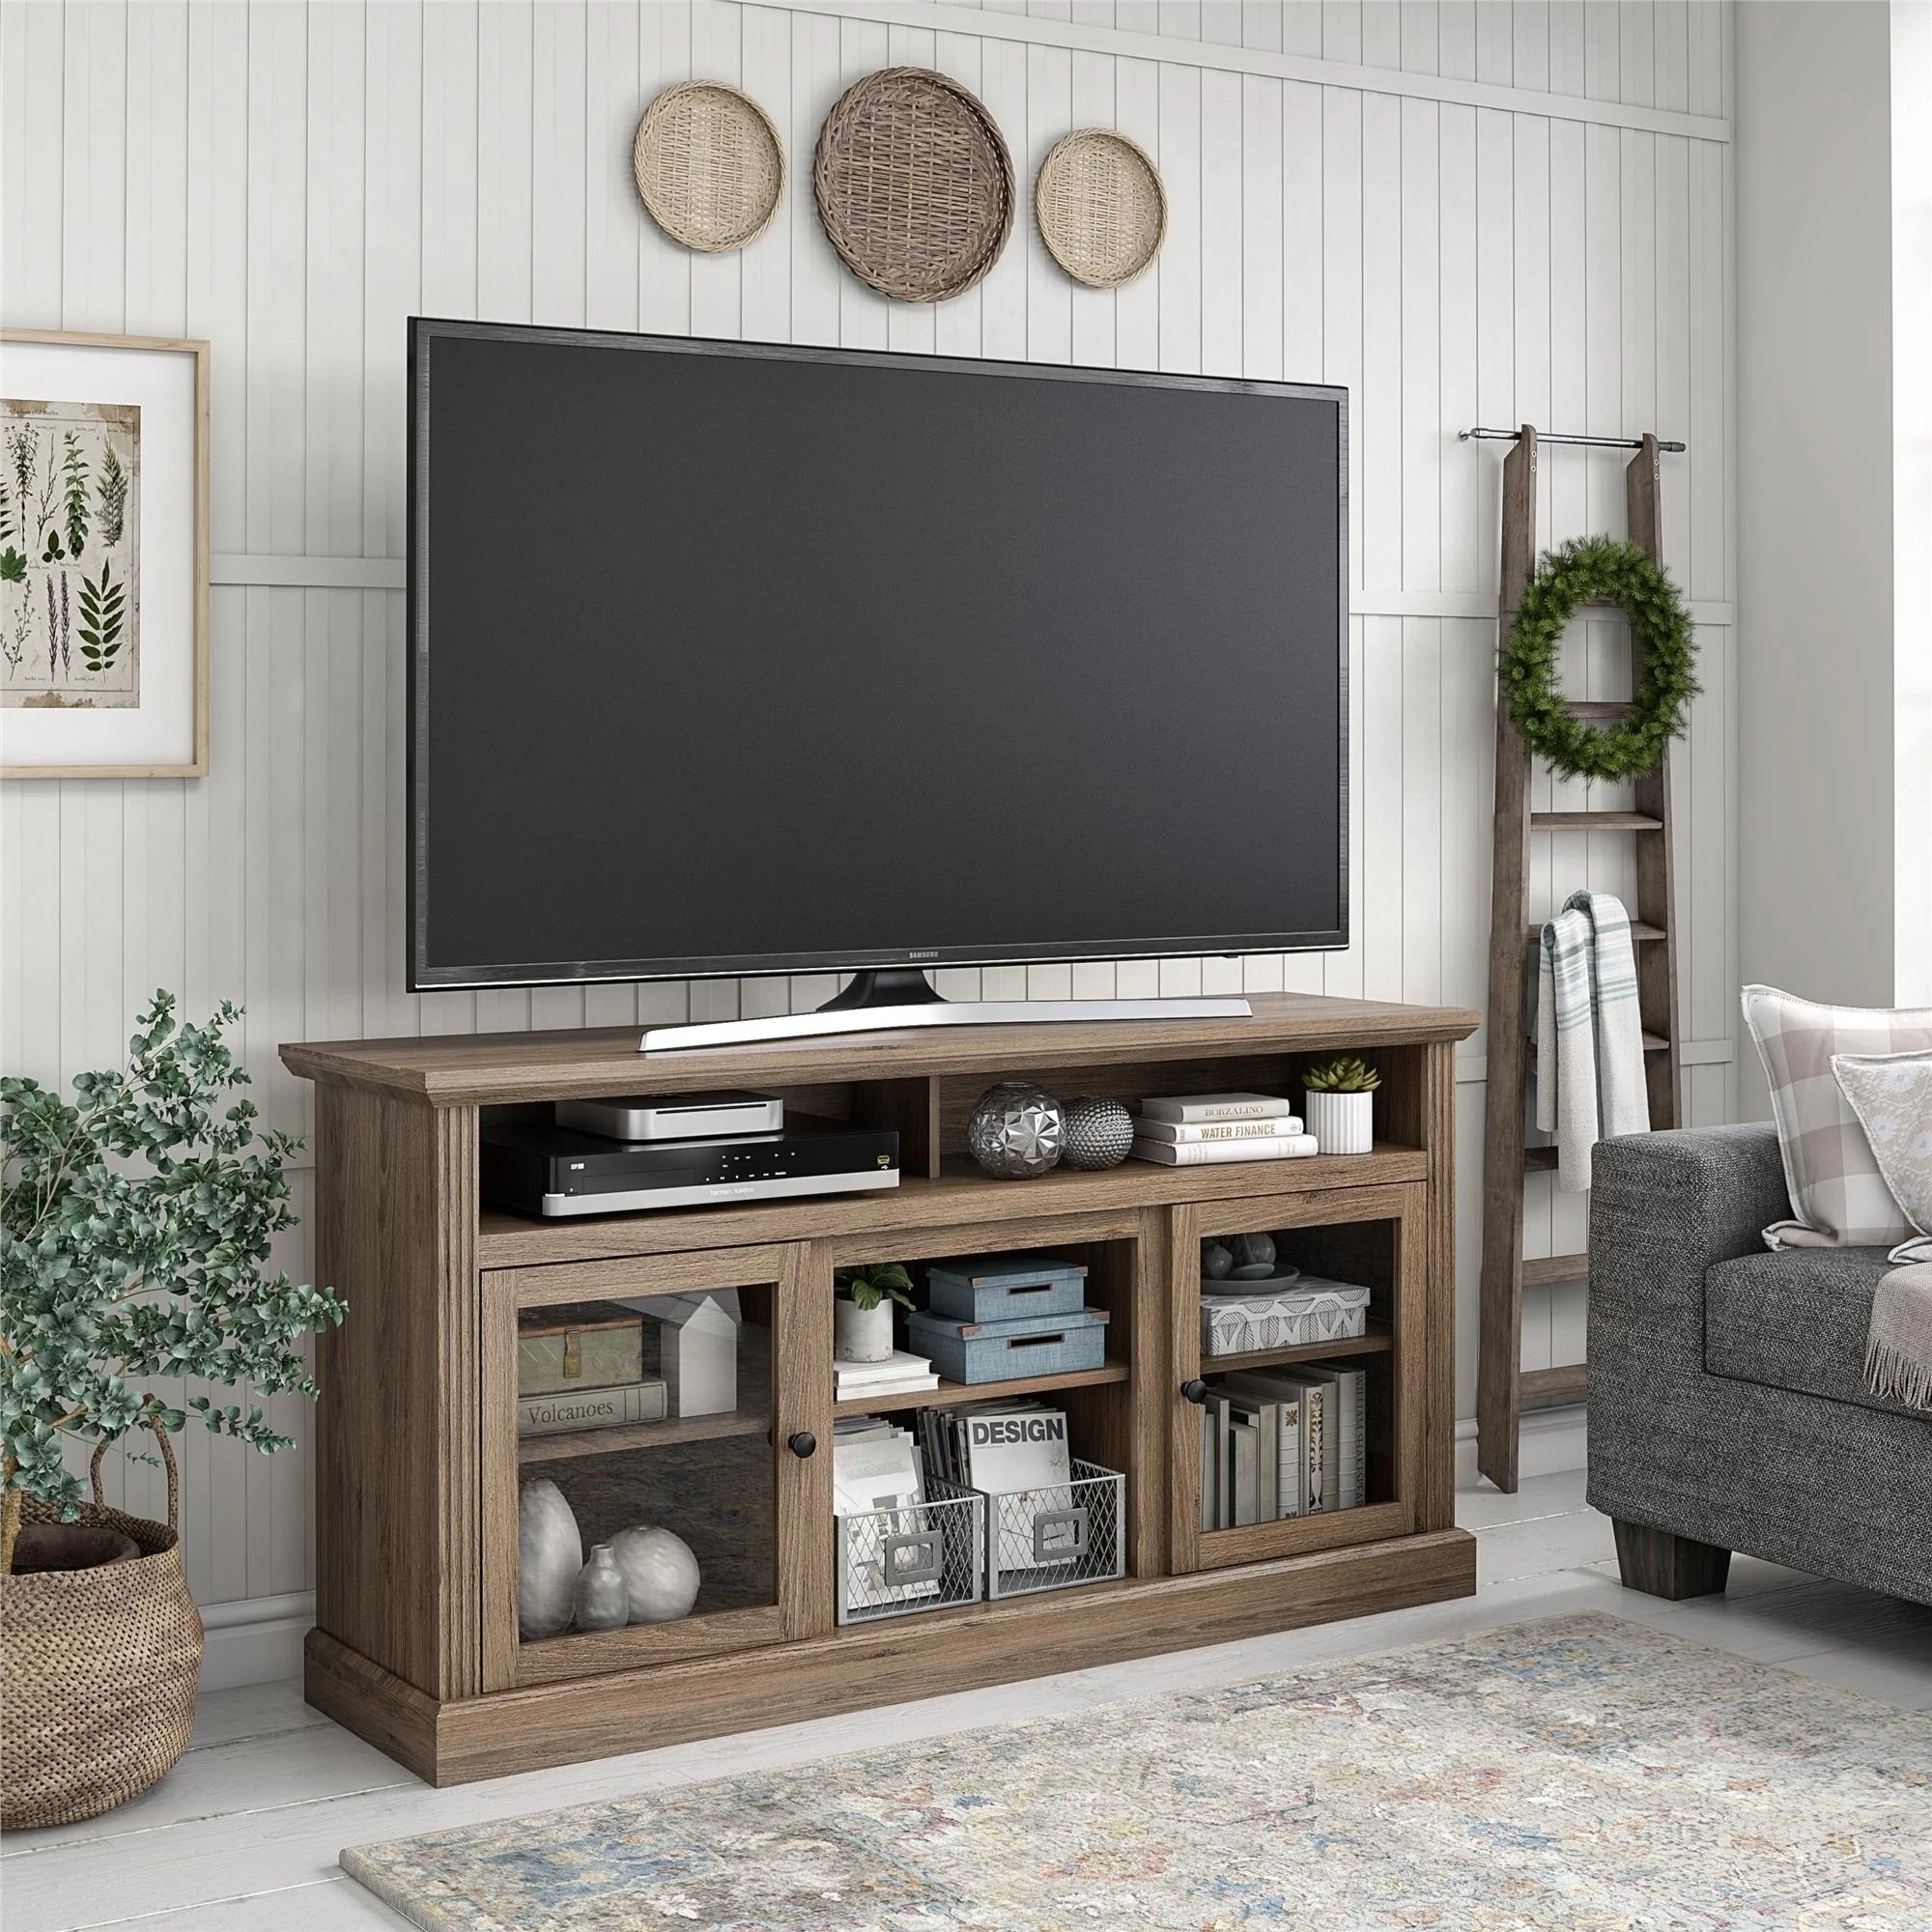 Shop Avenue Greene Garnett Tv Stand For Tvs Up To 65 Inches On Sale Overstock 28988632